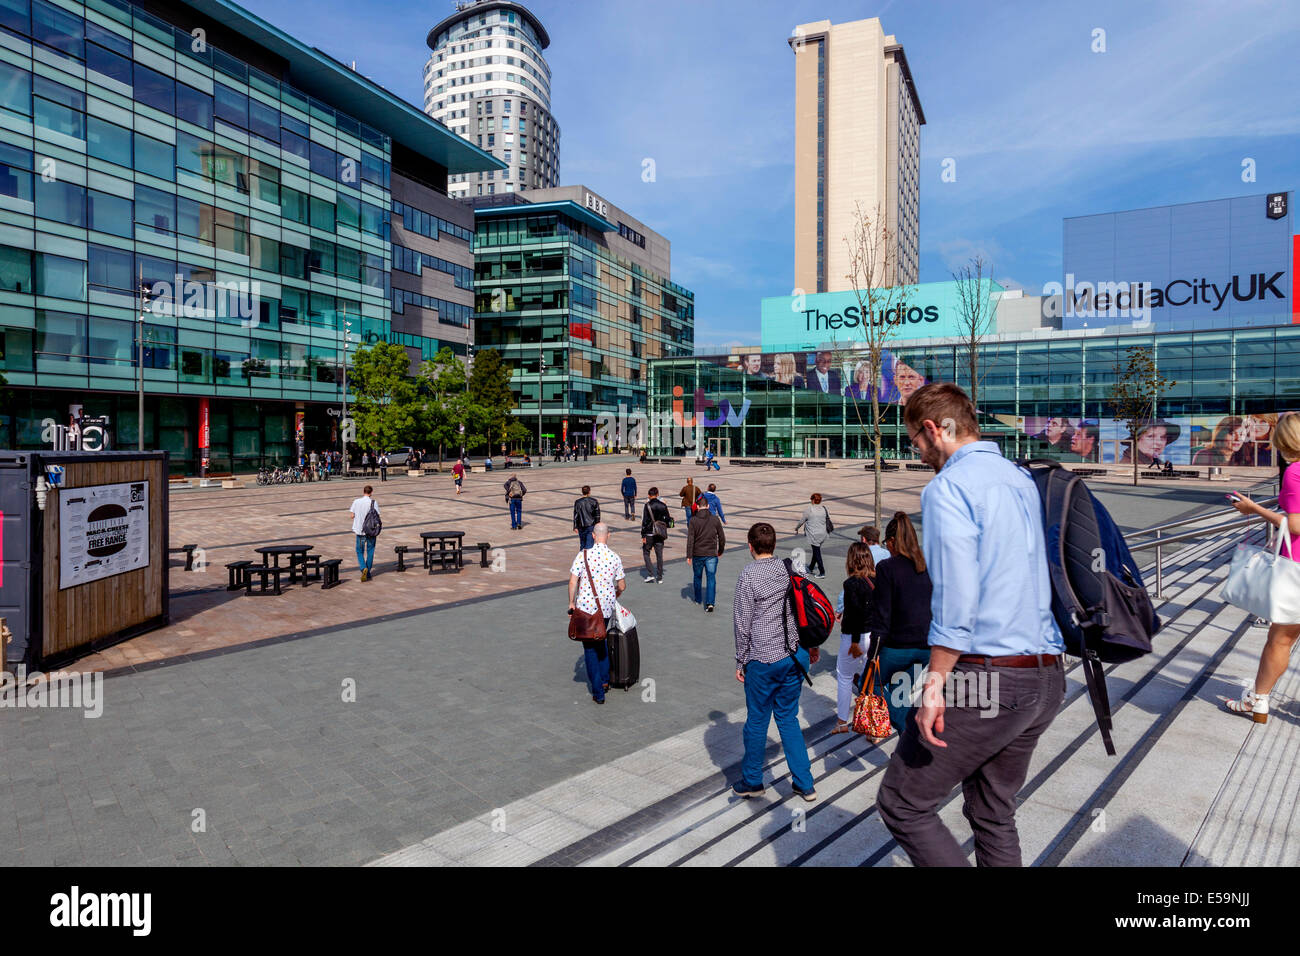 People Arriving For Work, Media City Uk, Salford Quays, Manchester, England - Stock Image